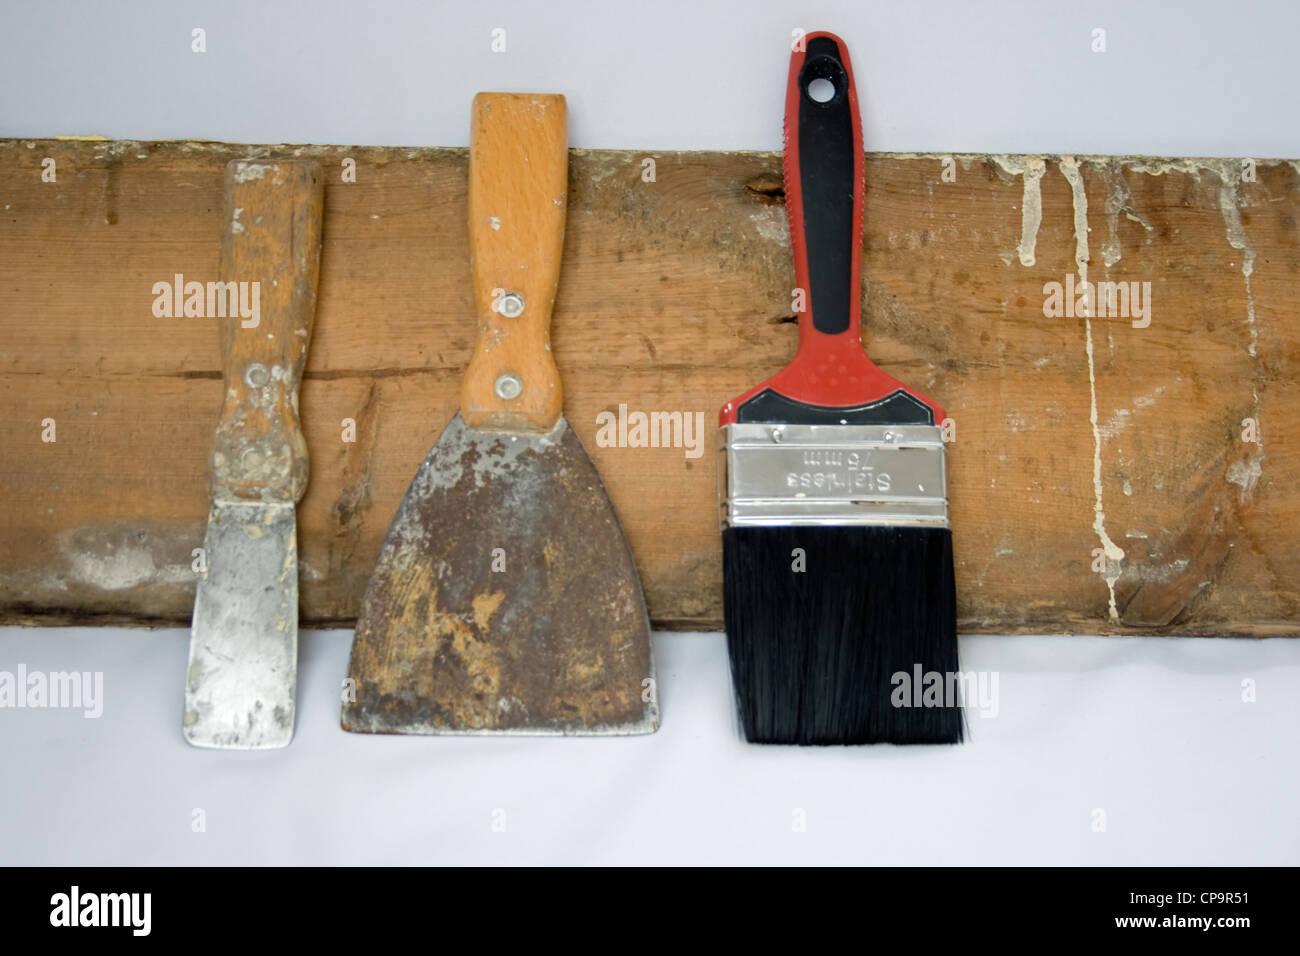 https://c8.alamy.com/comp/CP9R51/painting-and-decorating-tools-leaning-against-a-old-piece-of-skirting-CP9R51.jpg